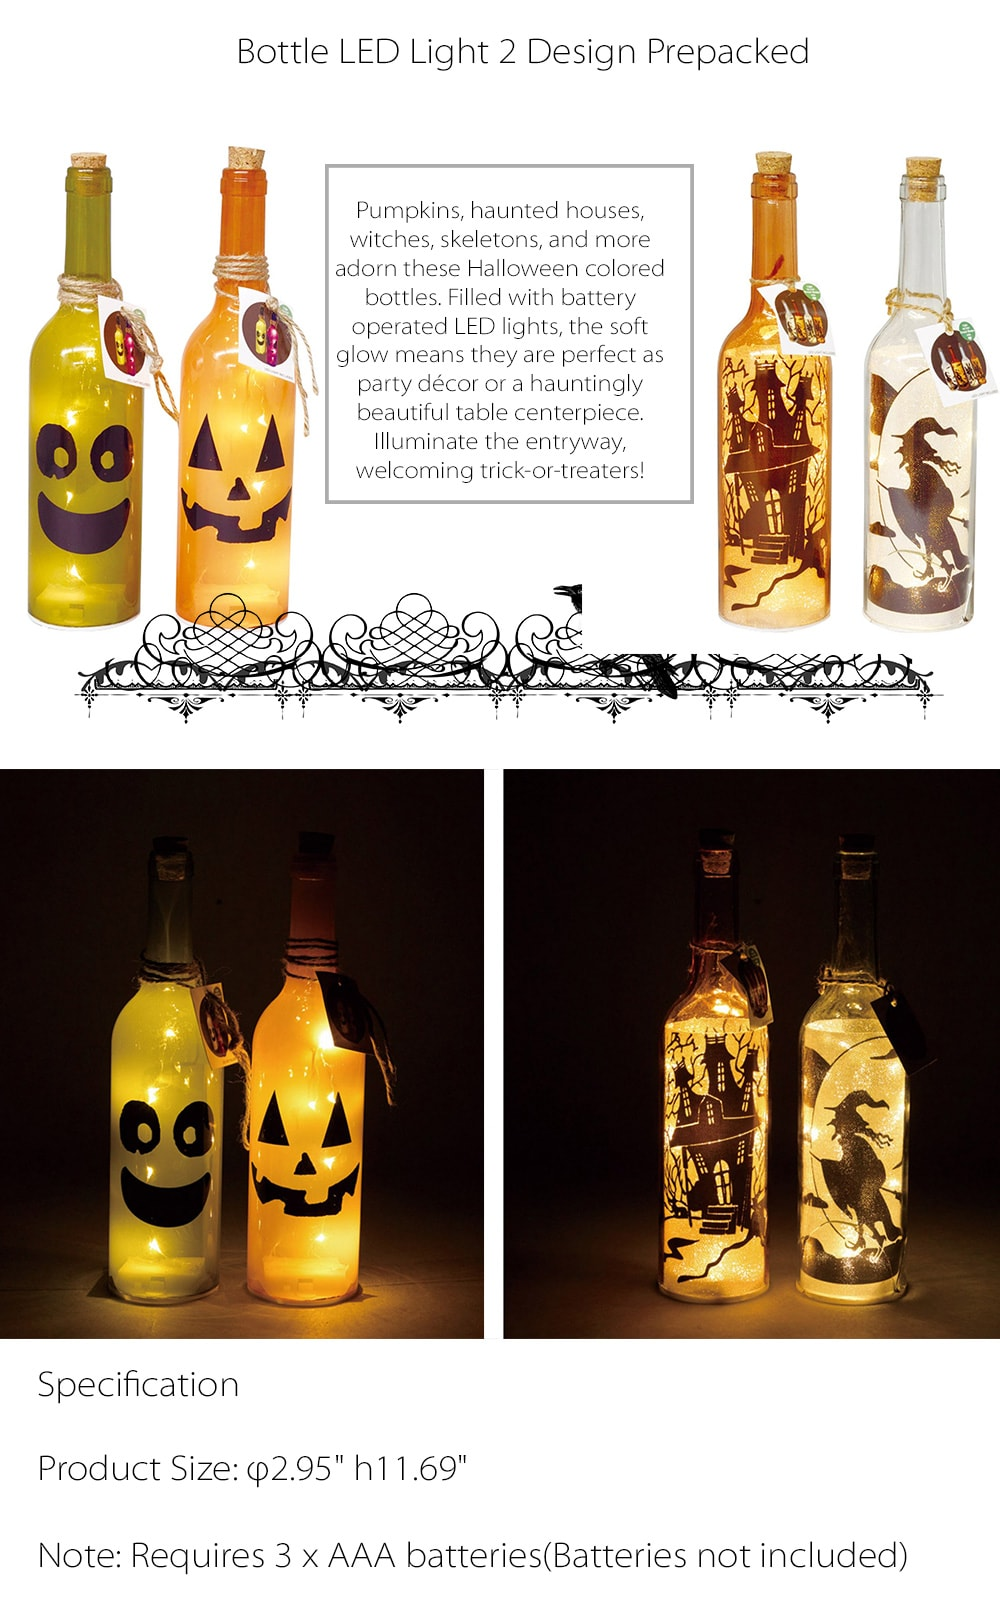 Bottle LED Light / 2 Design Prepacked For Your Halloween Decoration